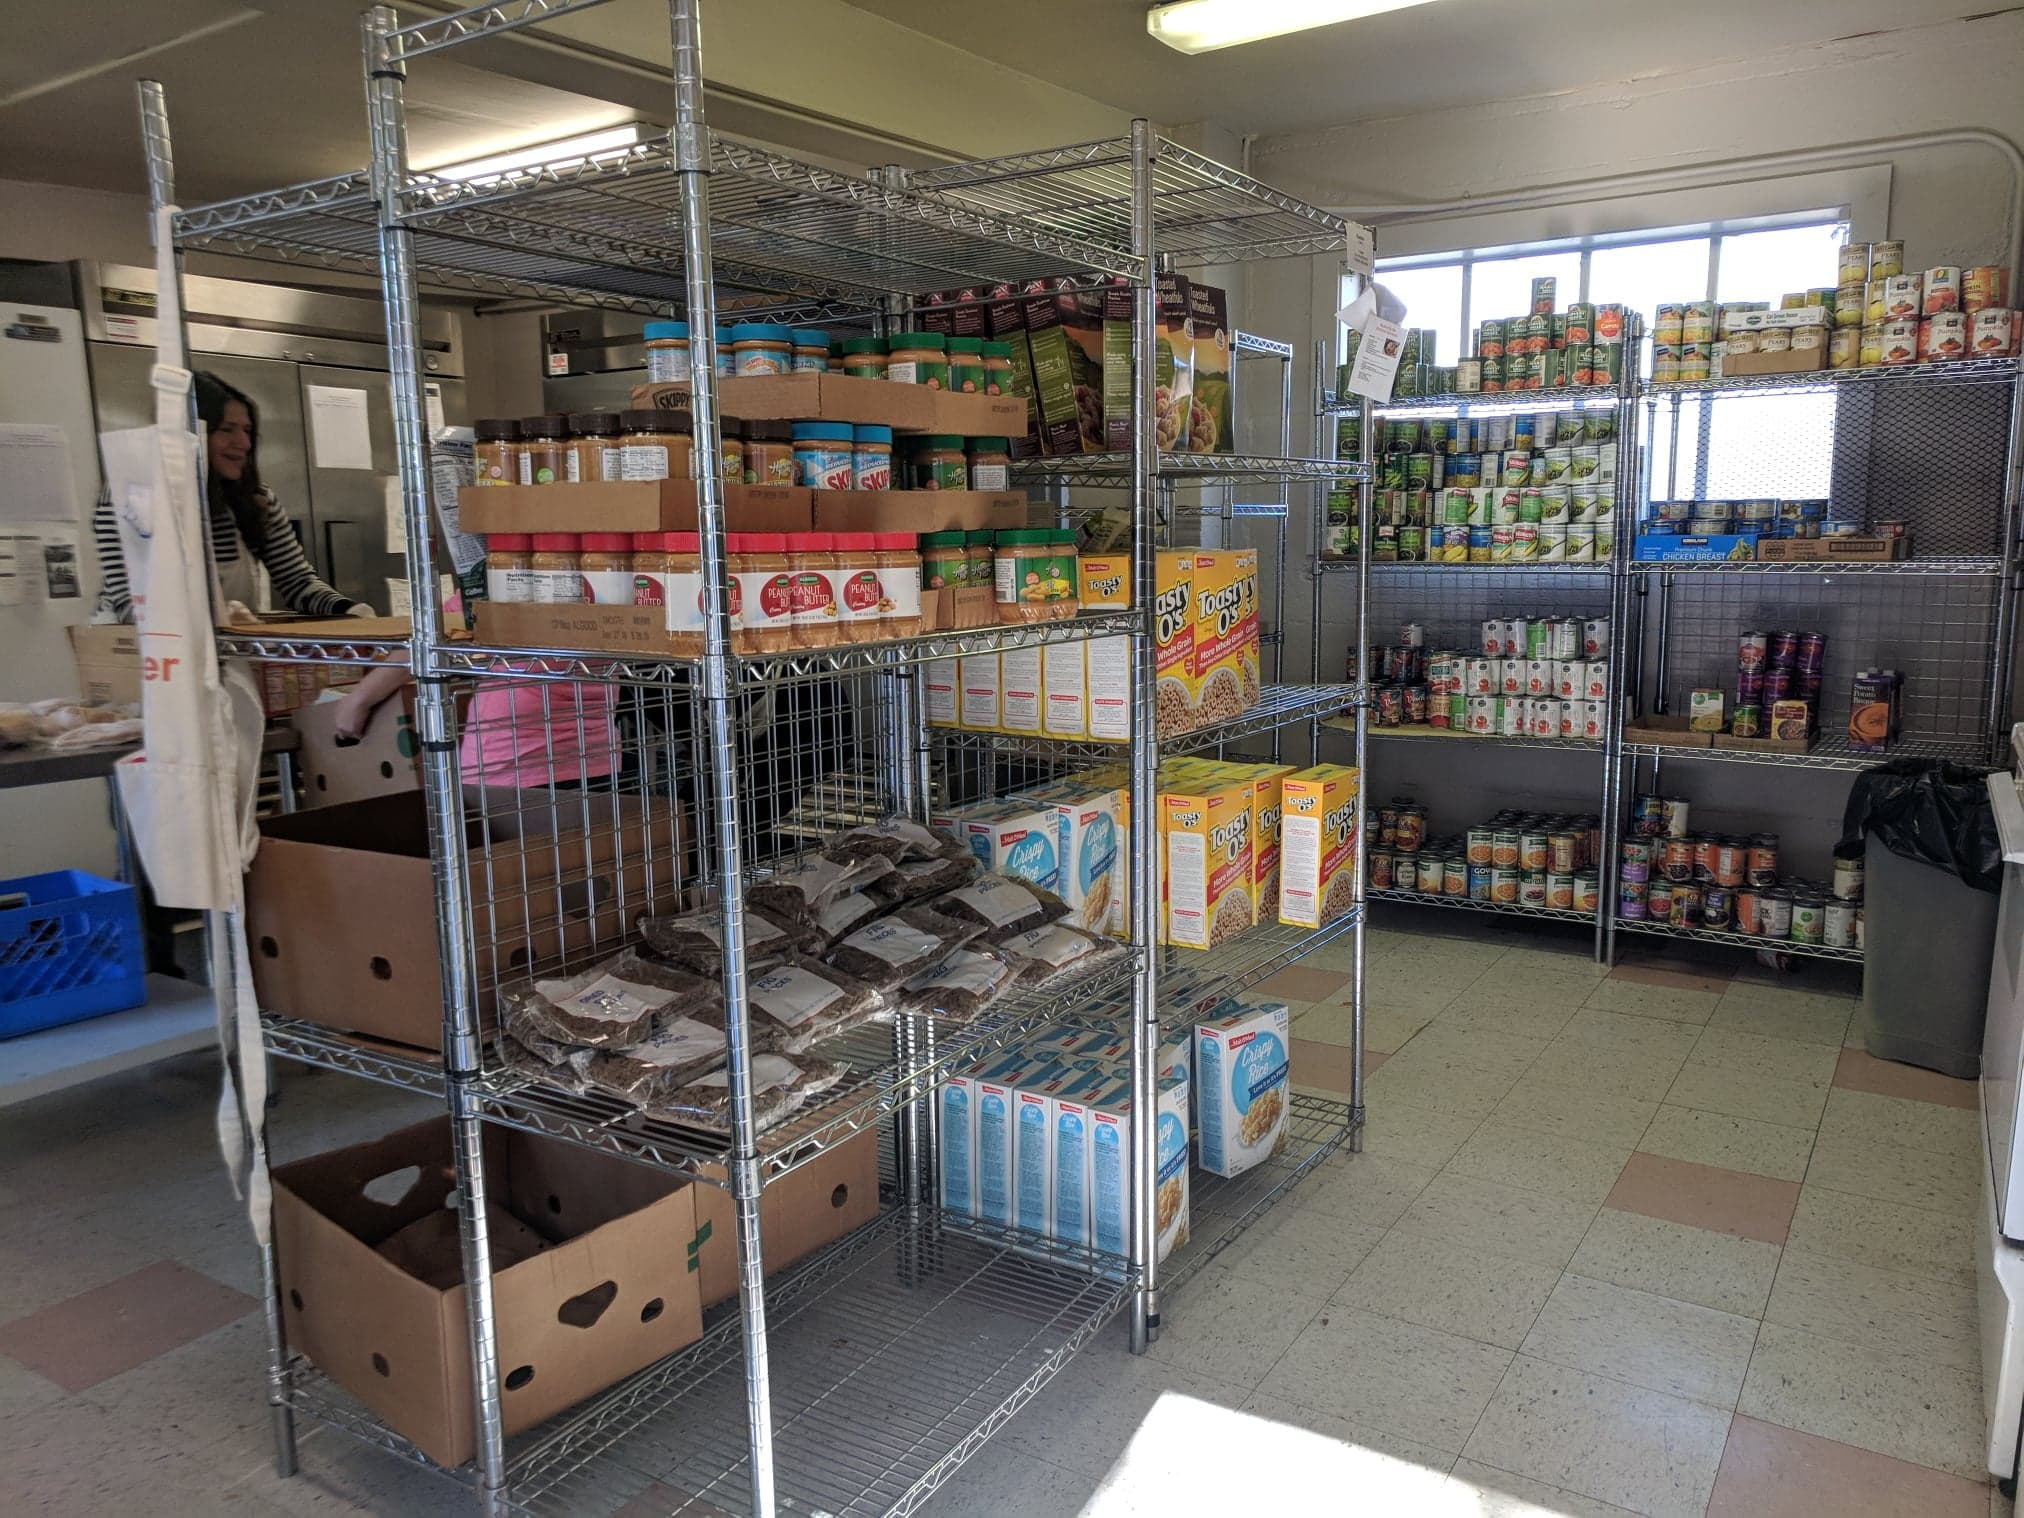 YWCA's Central Area Food Bank